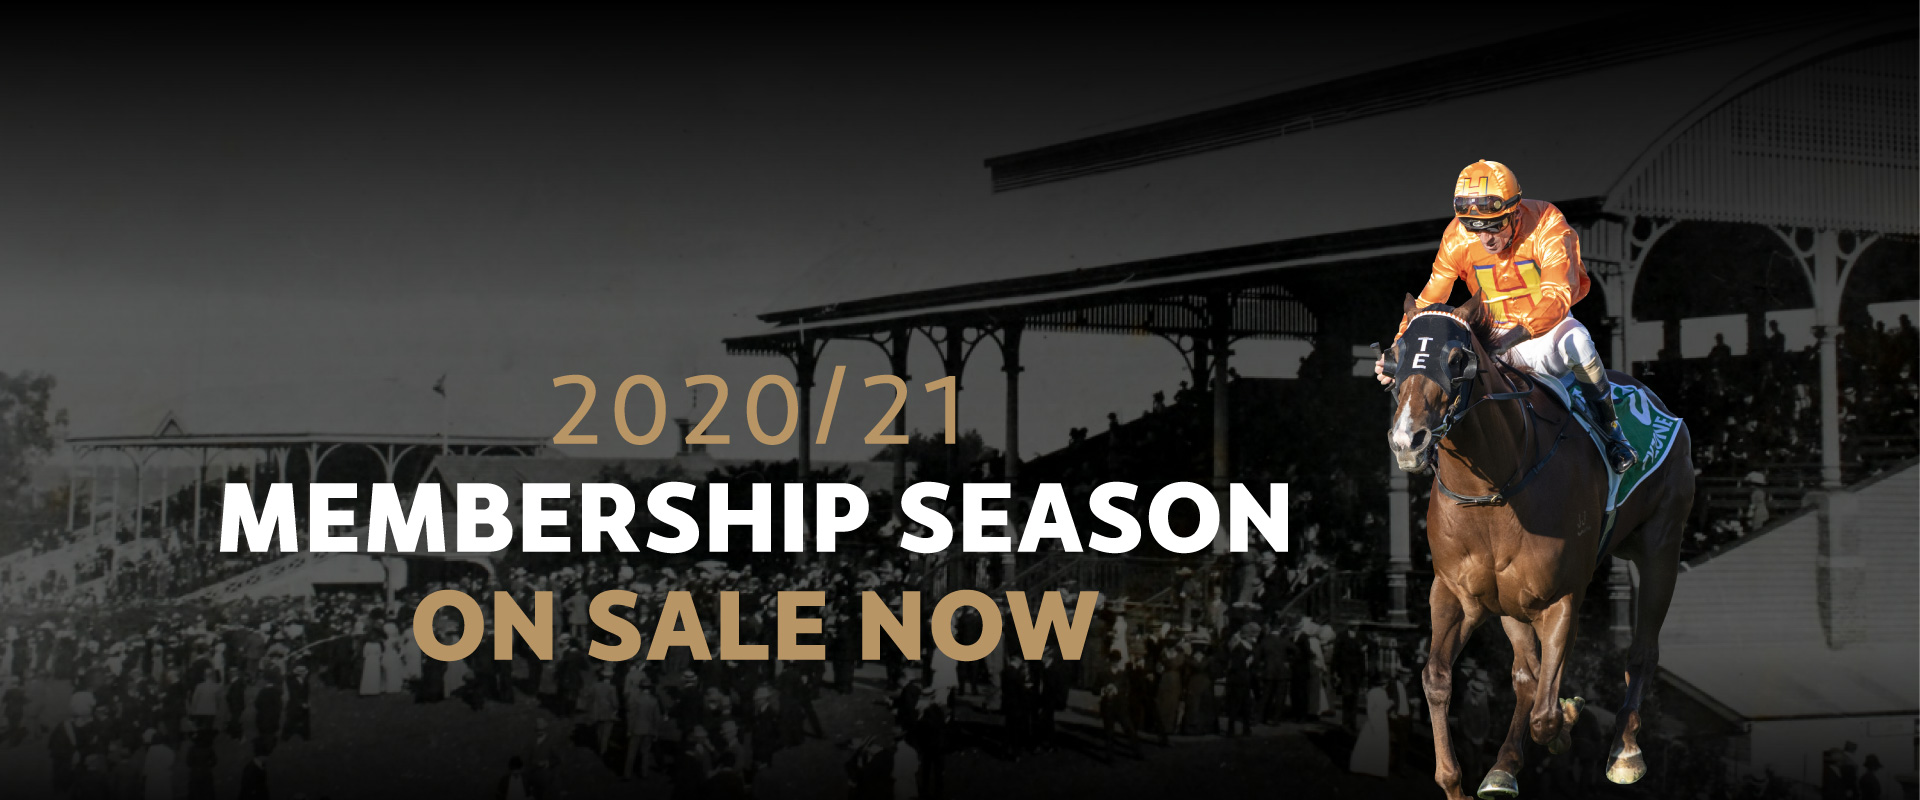 2020-21 Membership On Sale Now | Brisbane Racing Club